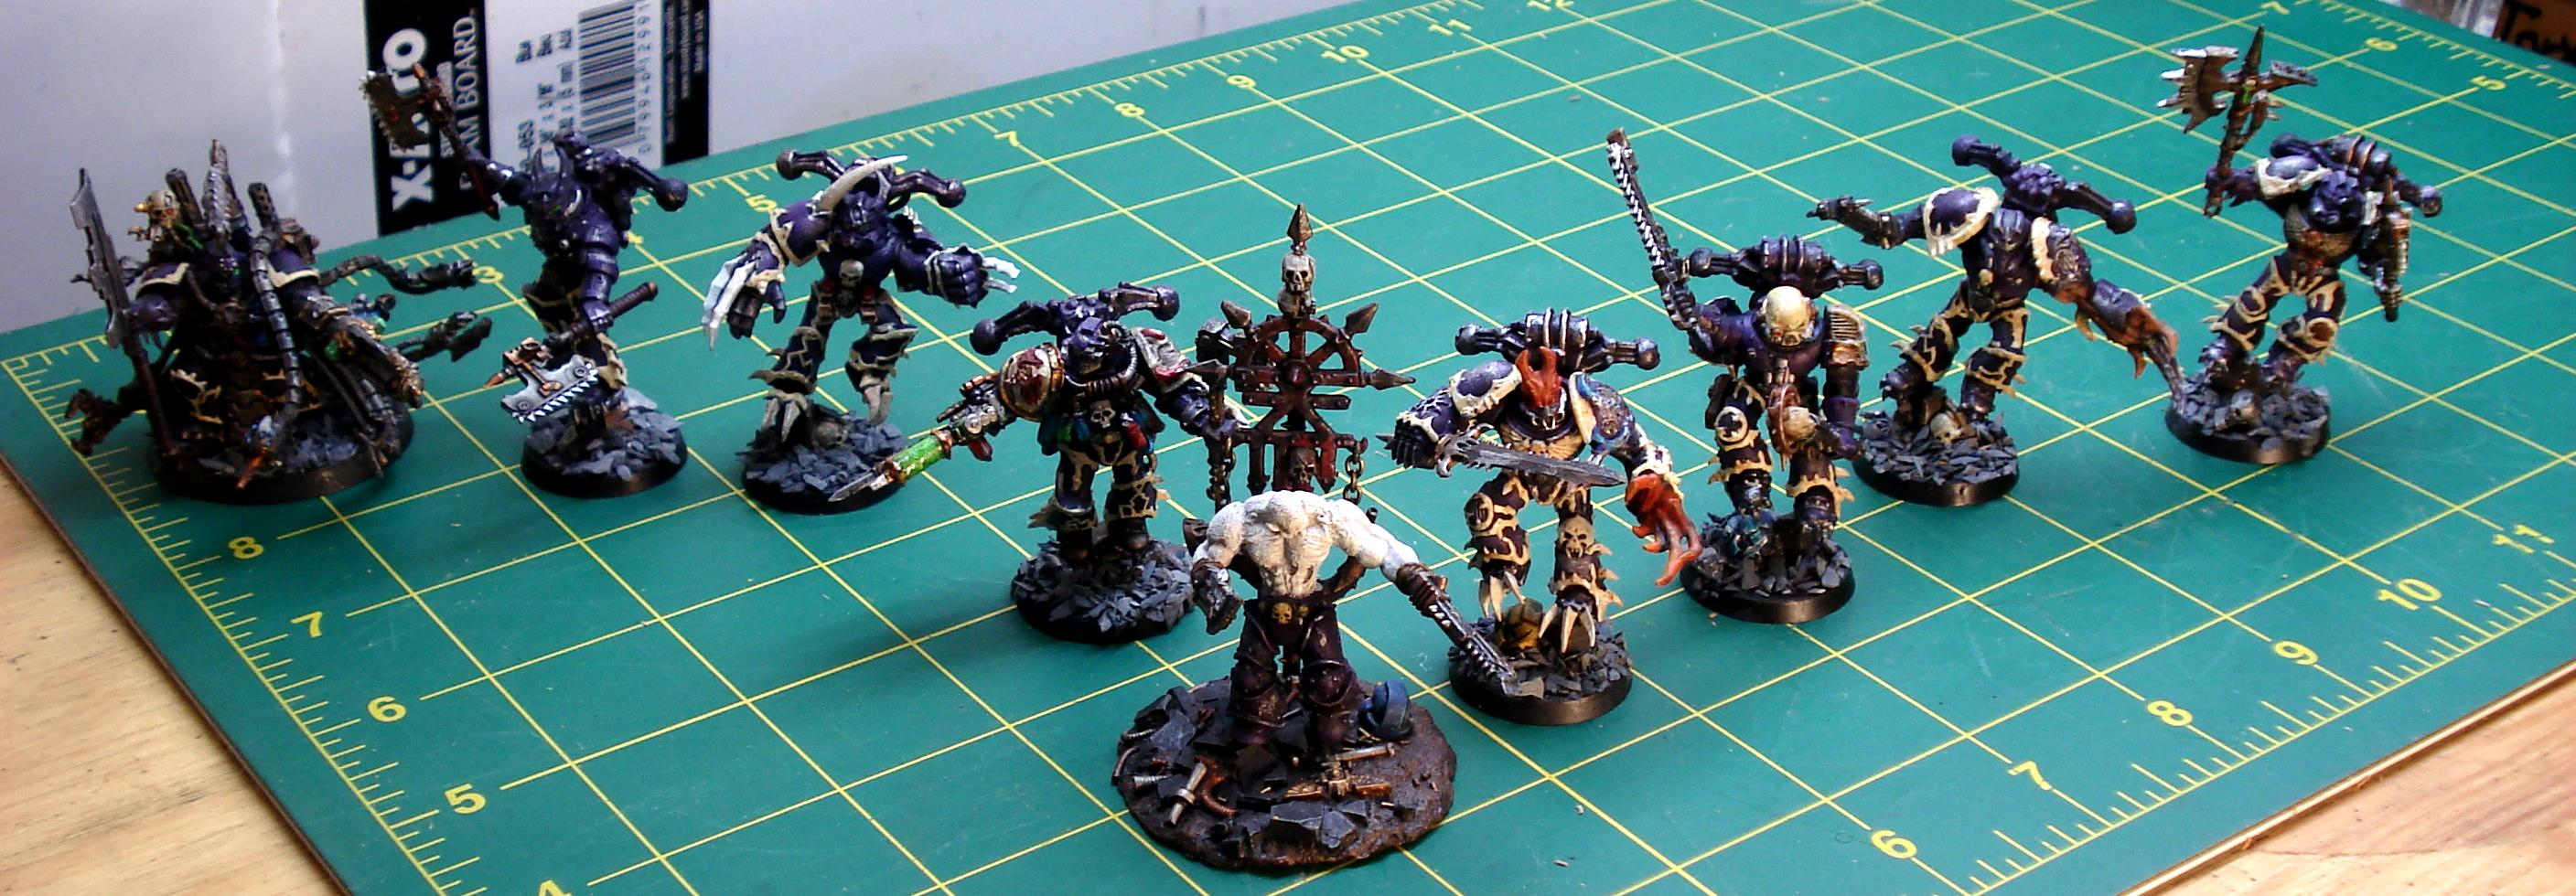 Assault, Chaos, Drinkers, Forge World, Greavus, Heavy Bolter, Khorne, Soul, Space Marines, Tellos